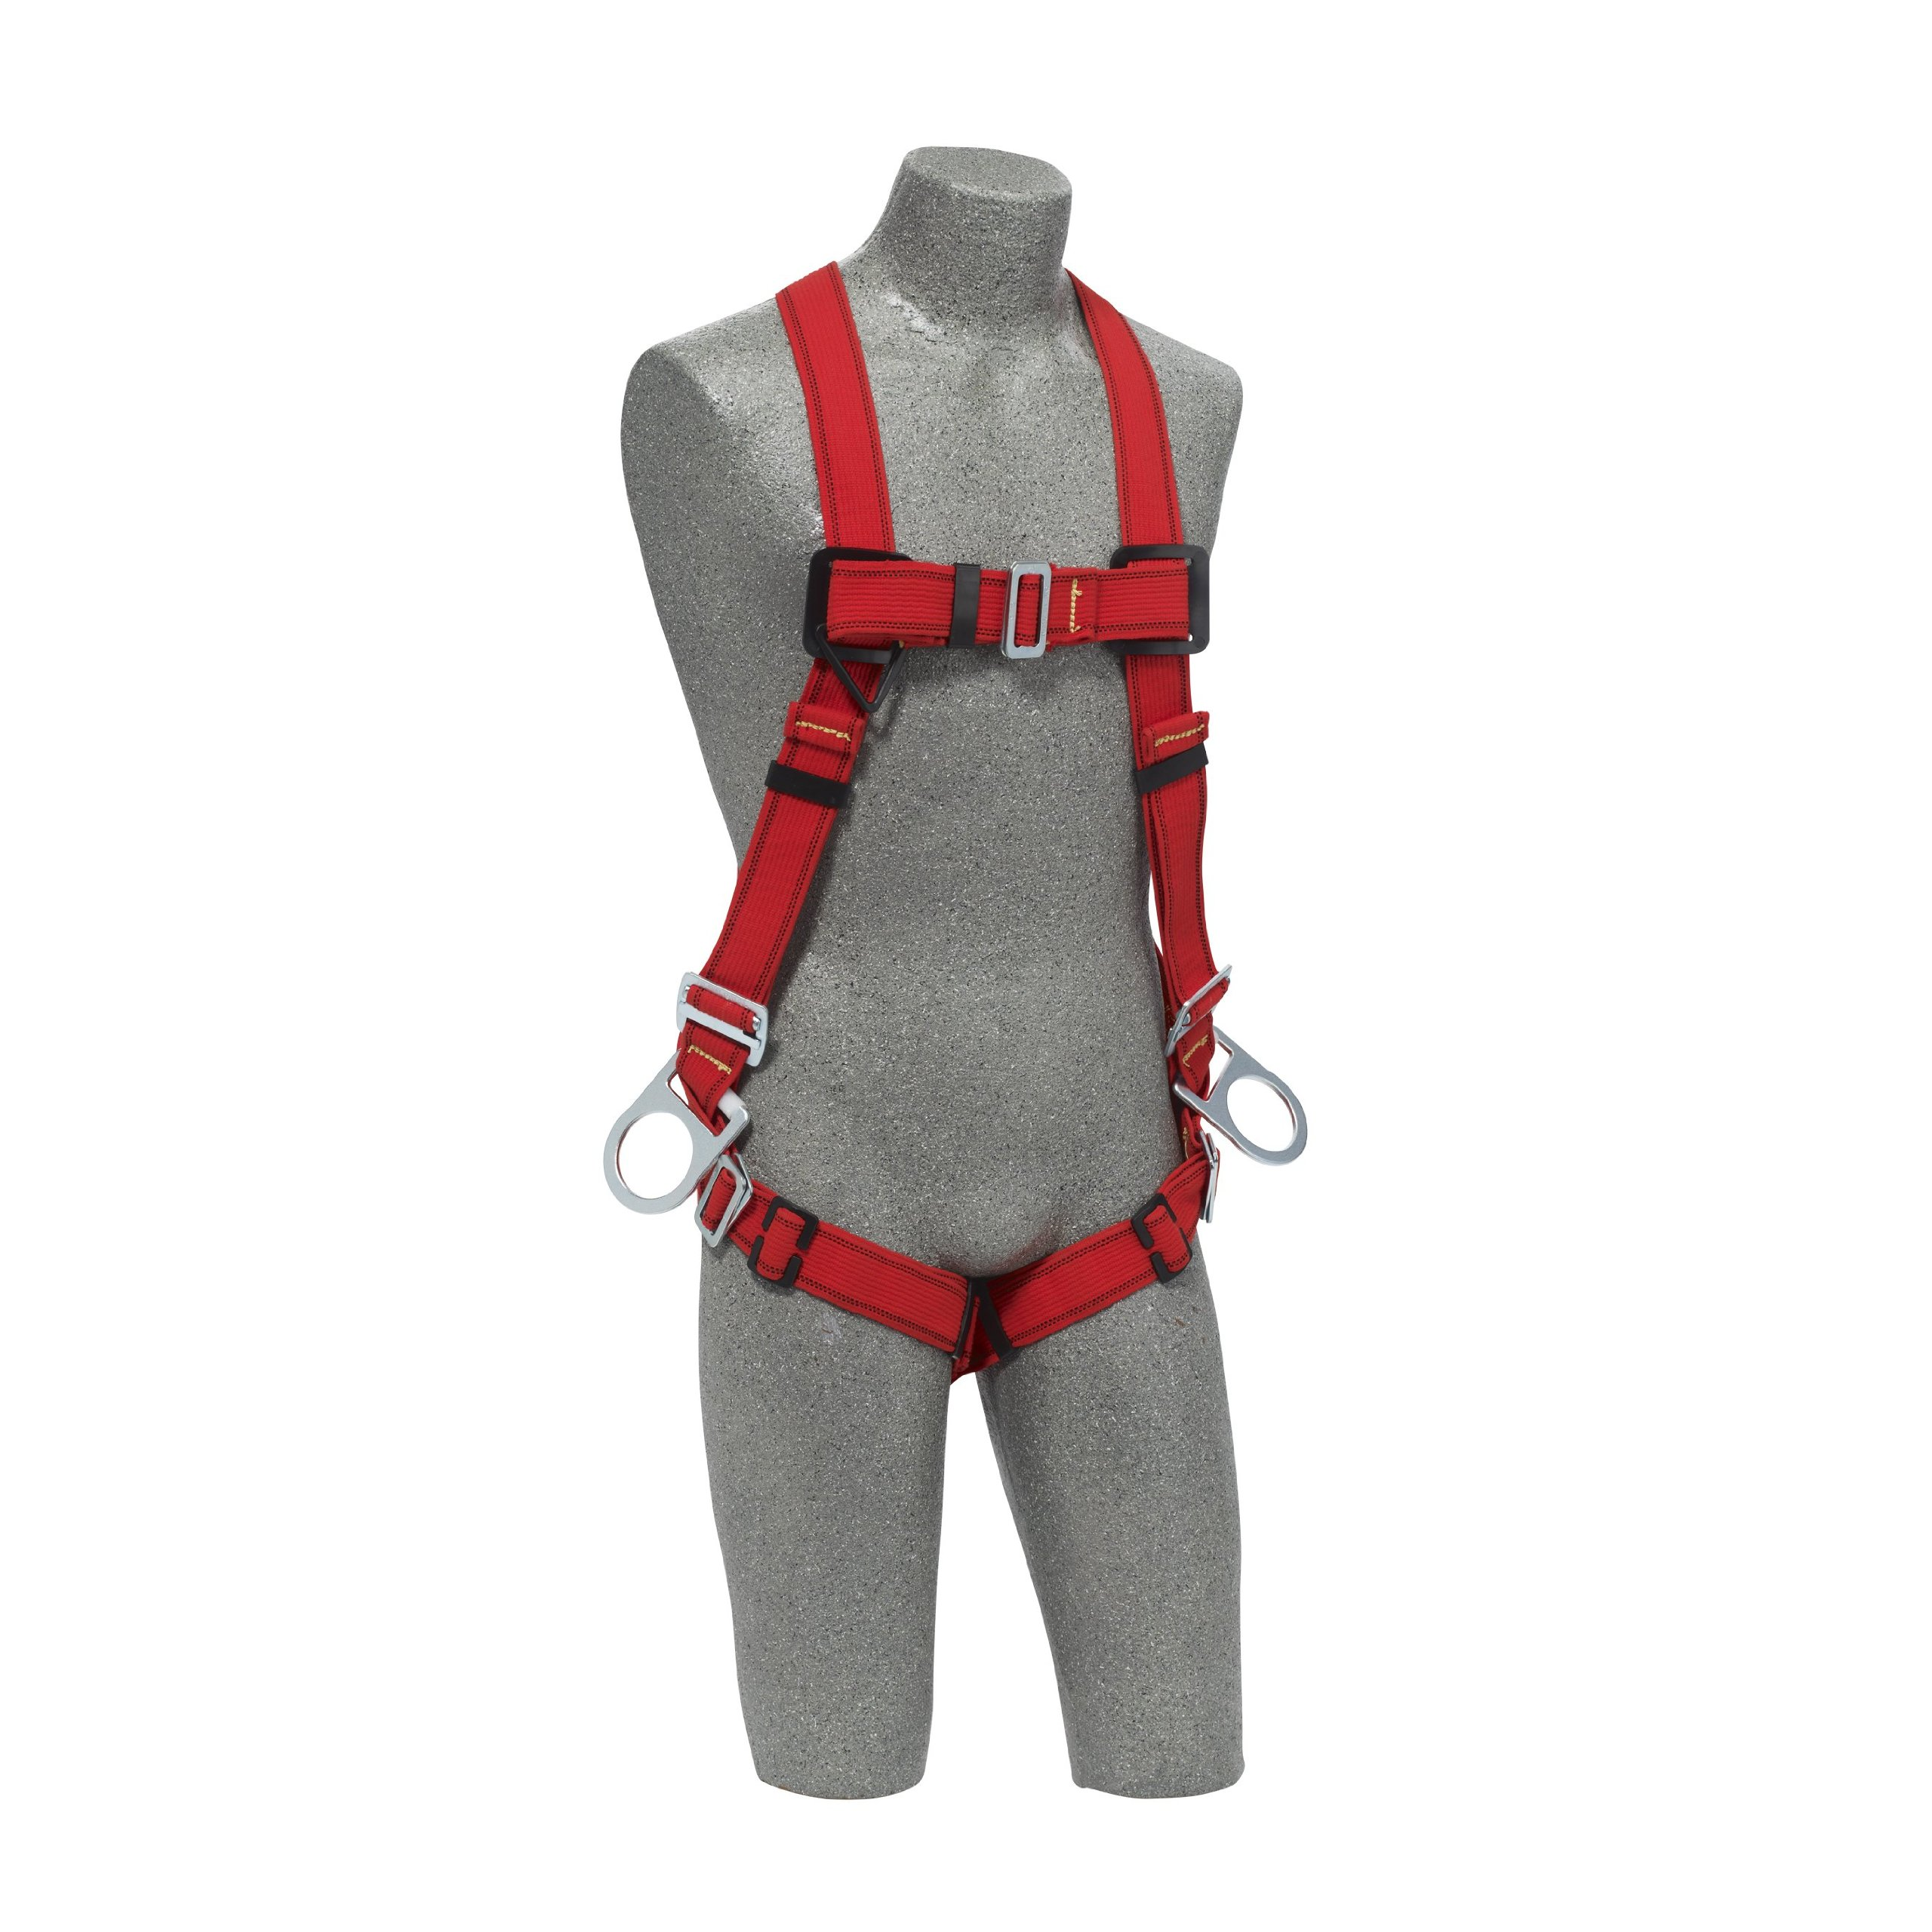 3M Protecta PRO 1191381 Fall Protection Full Body Welders Harness, with 3 D-Rings, Pass Thru Legs, 420 Pound Capacity, Medium/Large, Red/Black